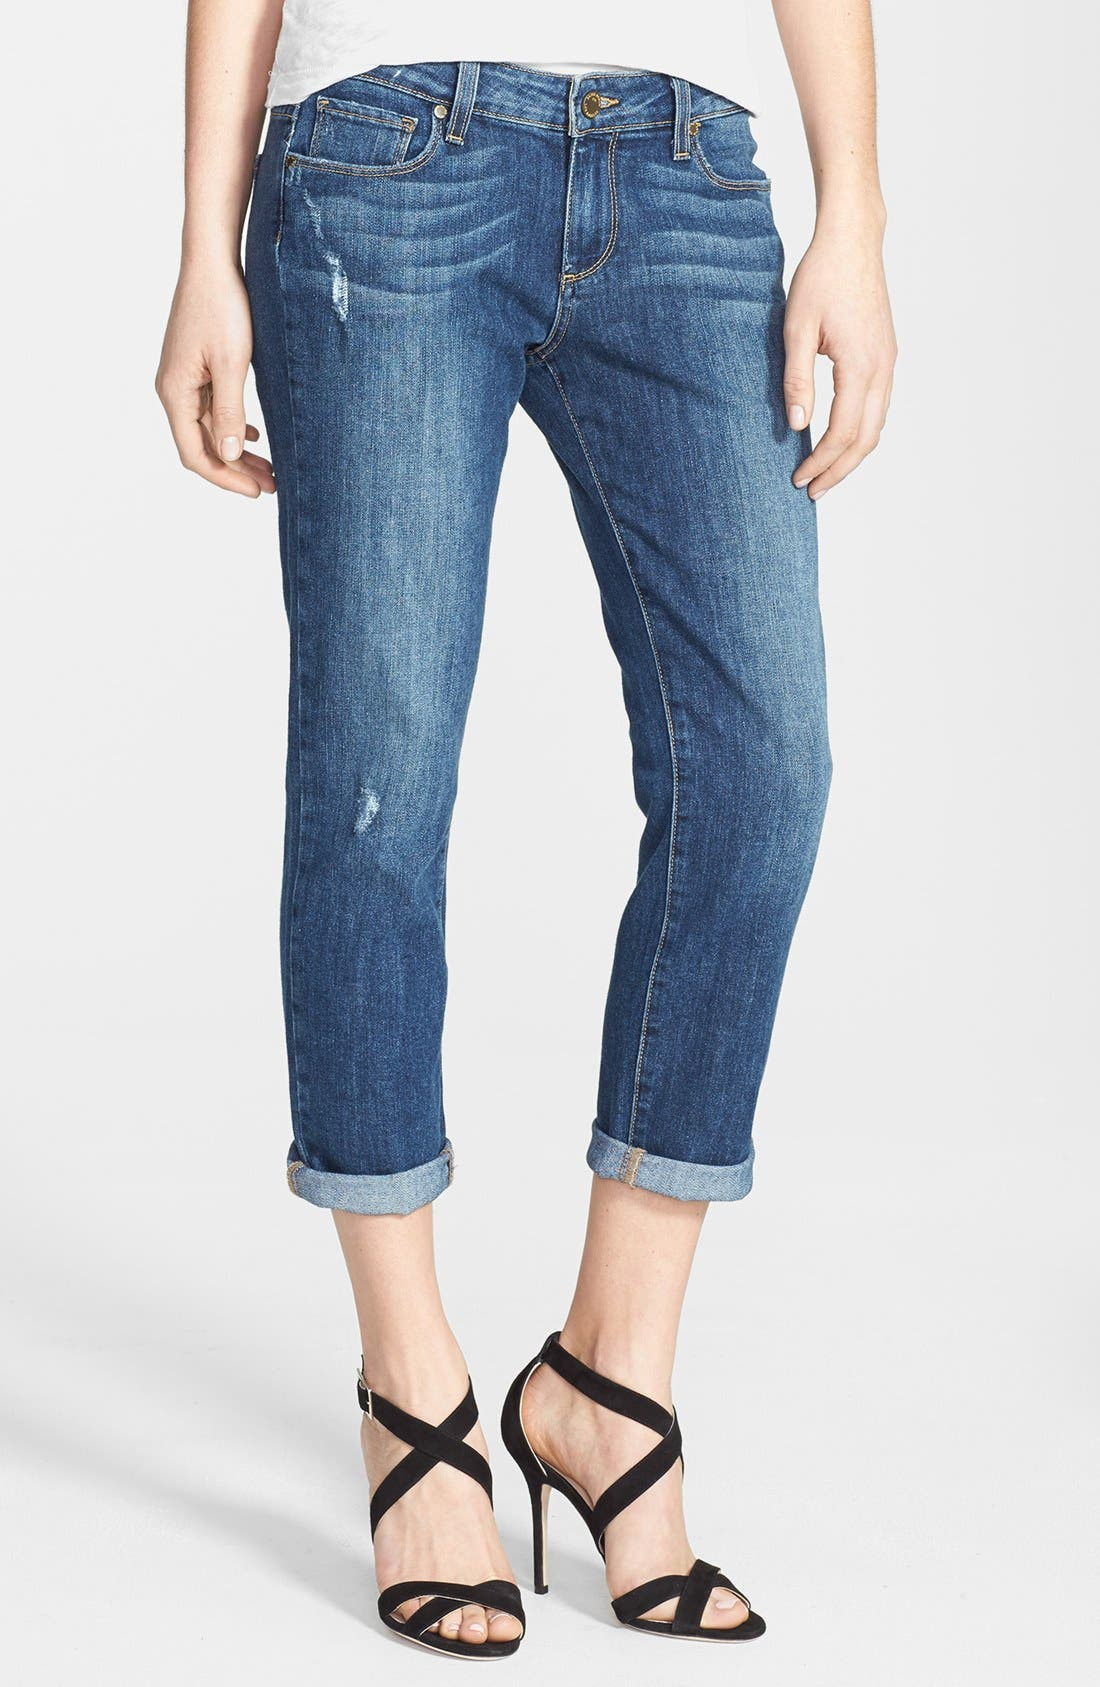 Alternate Image 1 Selected - Paige Denim 'Jimmy Jimmy' Distressed Crop Jeans (Luca)